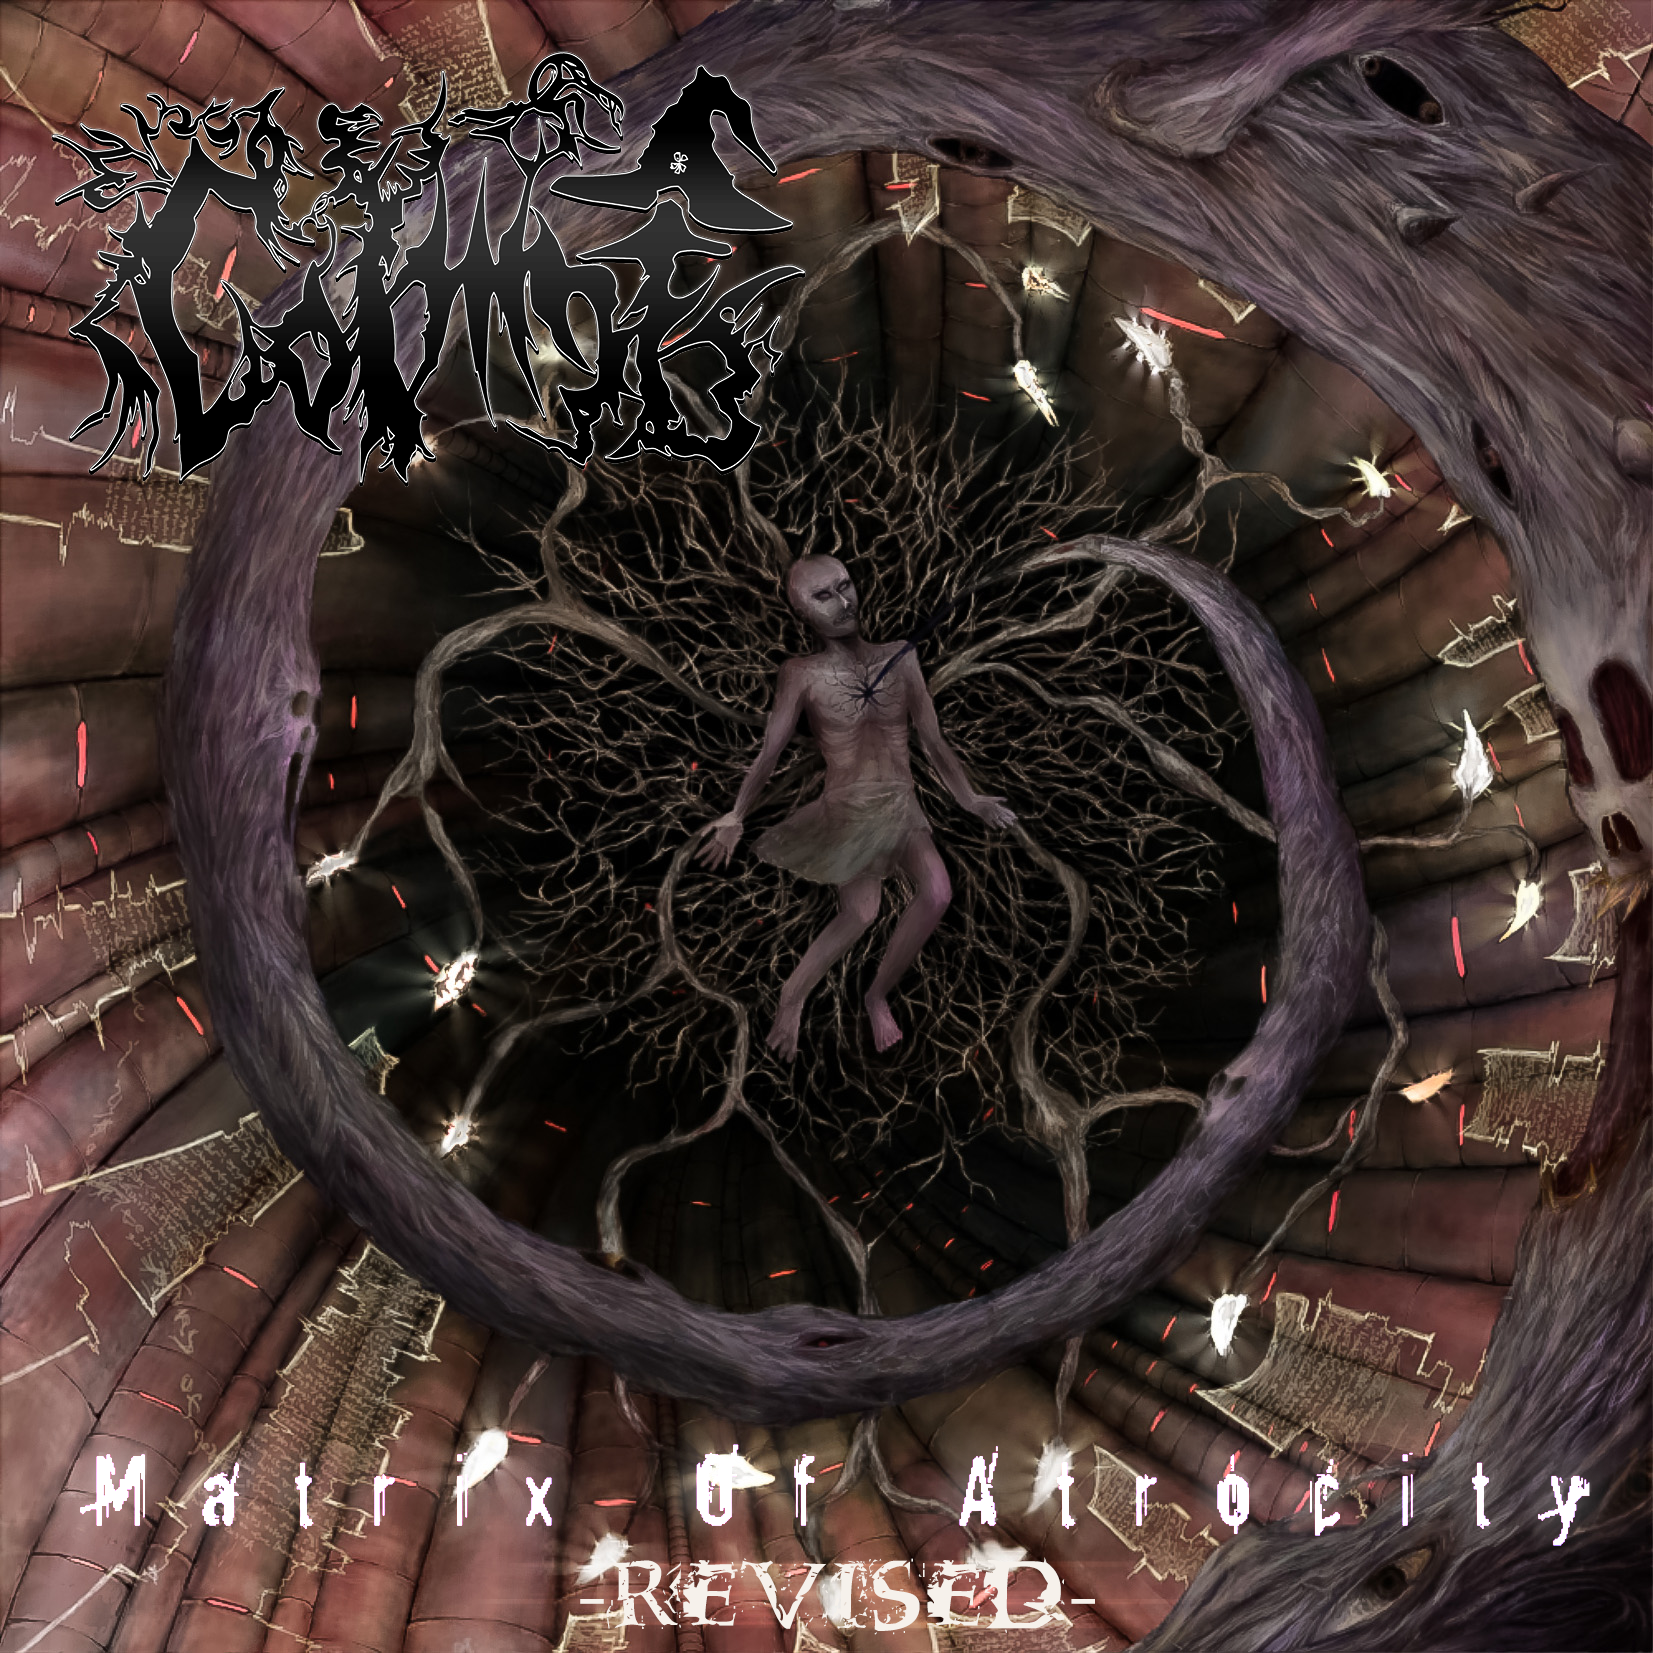 Matrix Of Atrocity -Revised-